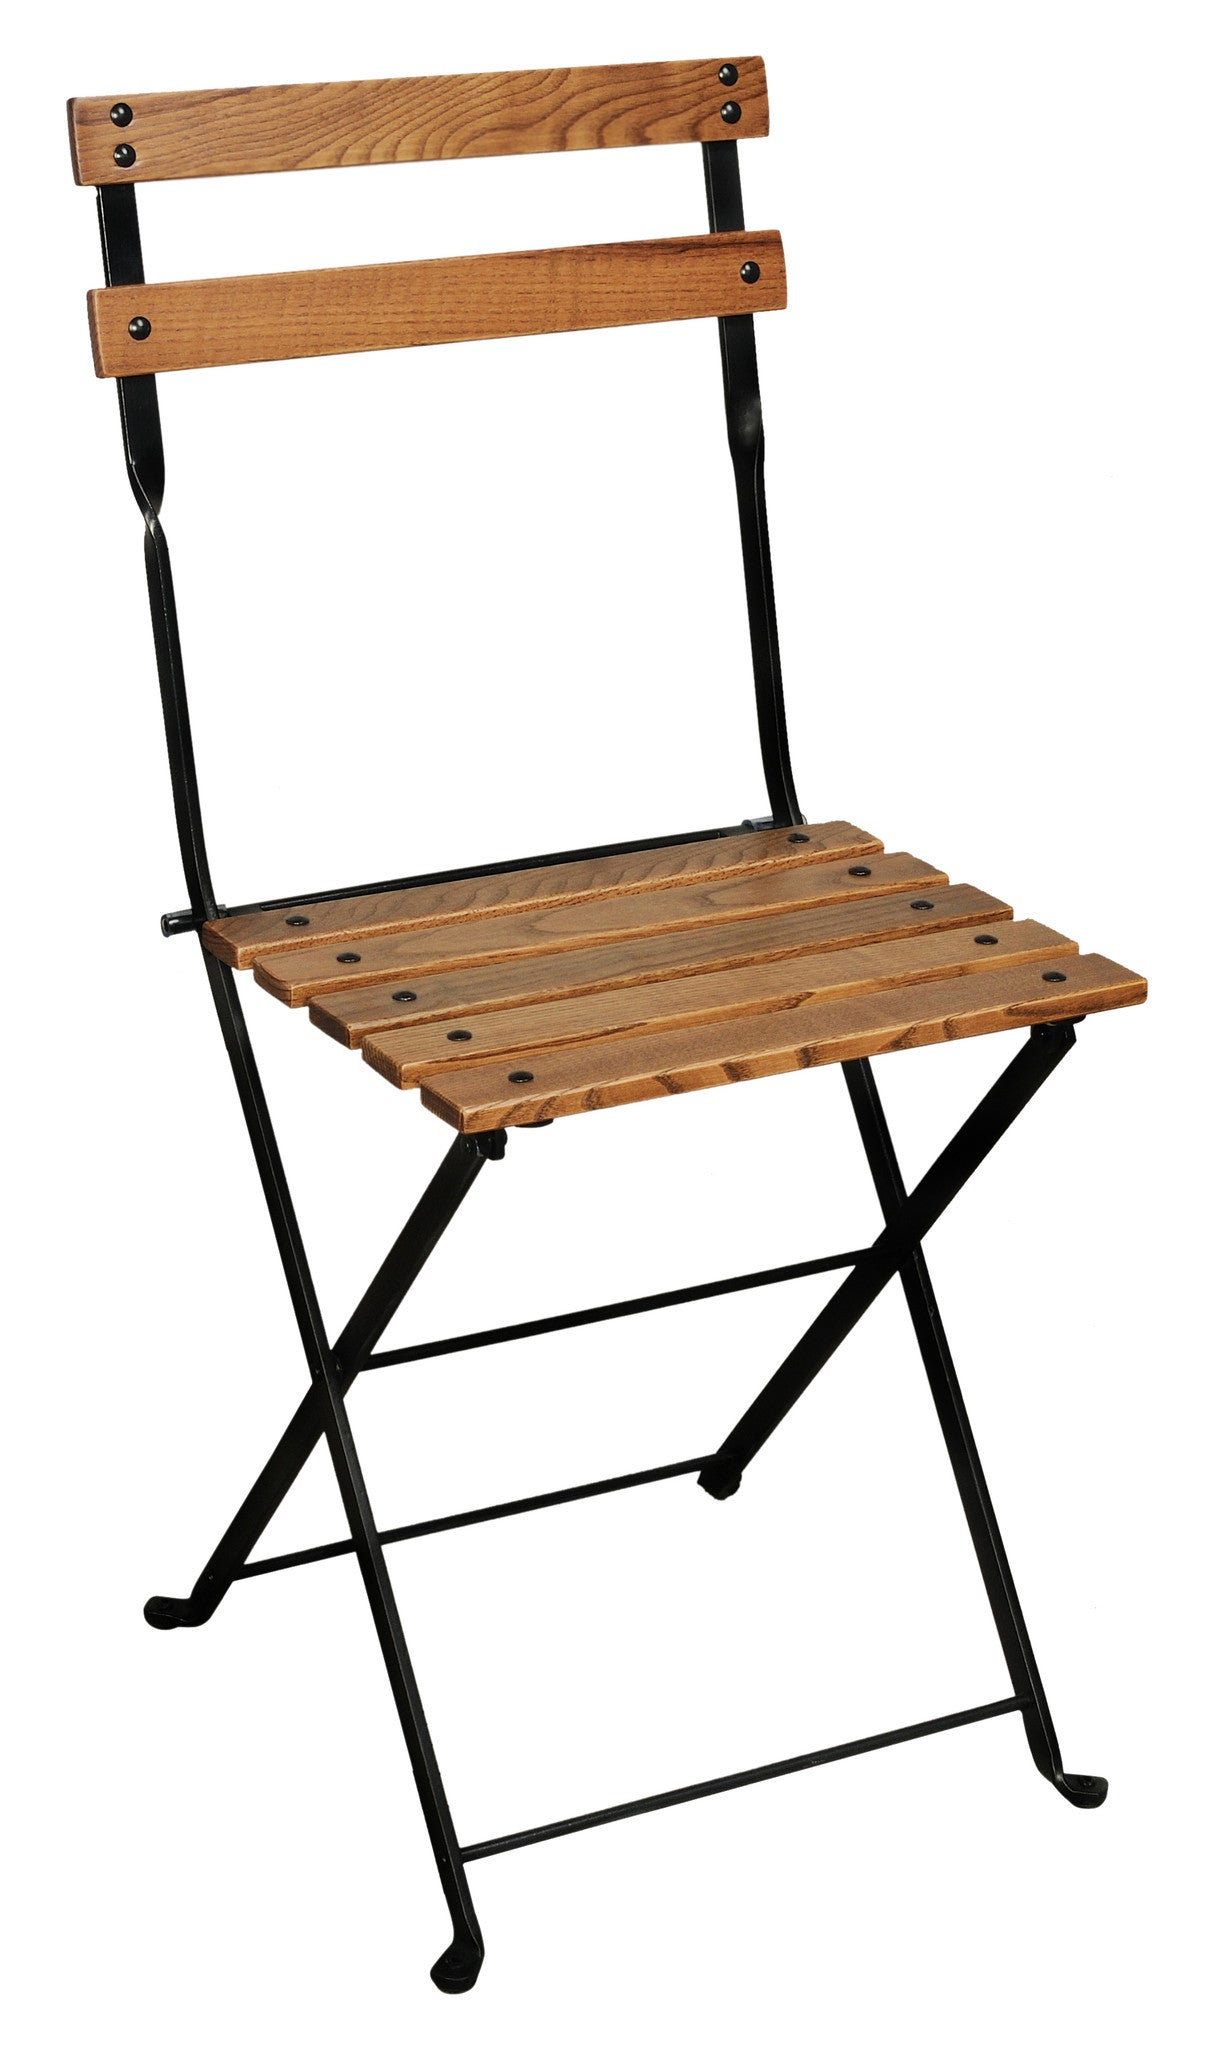 Fantastic Buy Cafe Bistro French Folding Side Chair W European Chestnut Slats From Eventsuber Com Set Of 2 At Eventsuber Com For Only 233 50 Caraccident5 Cool Chair Designs And Ideas Caraccident5Info